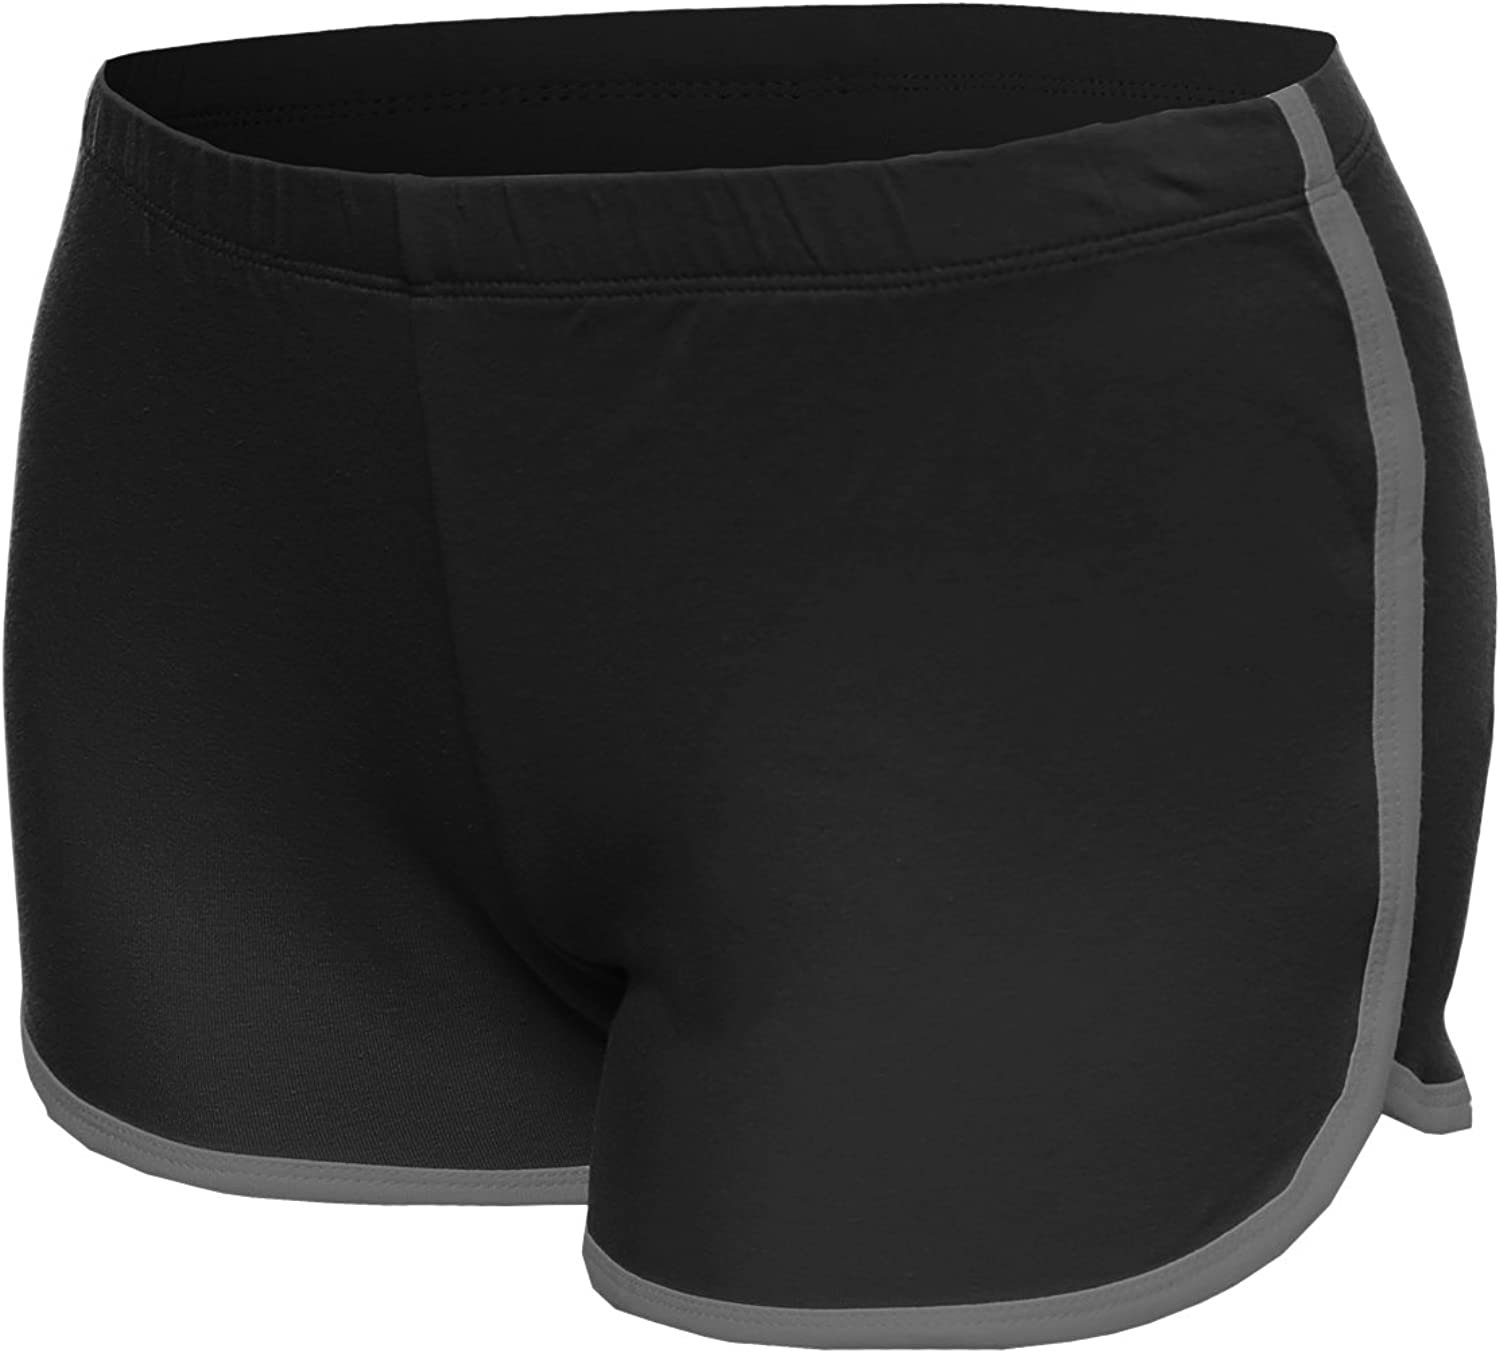 Made by Emma MBE Women's Basic Athletic Sport Cotton Shorts in